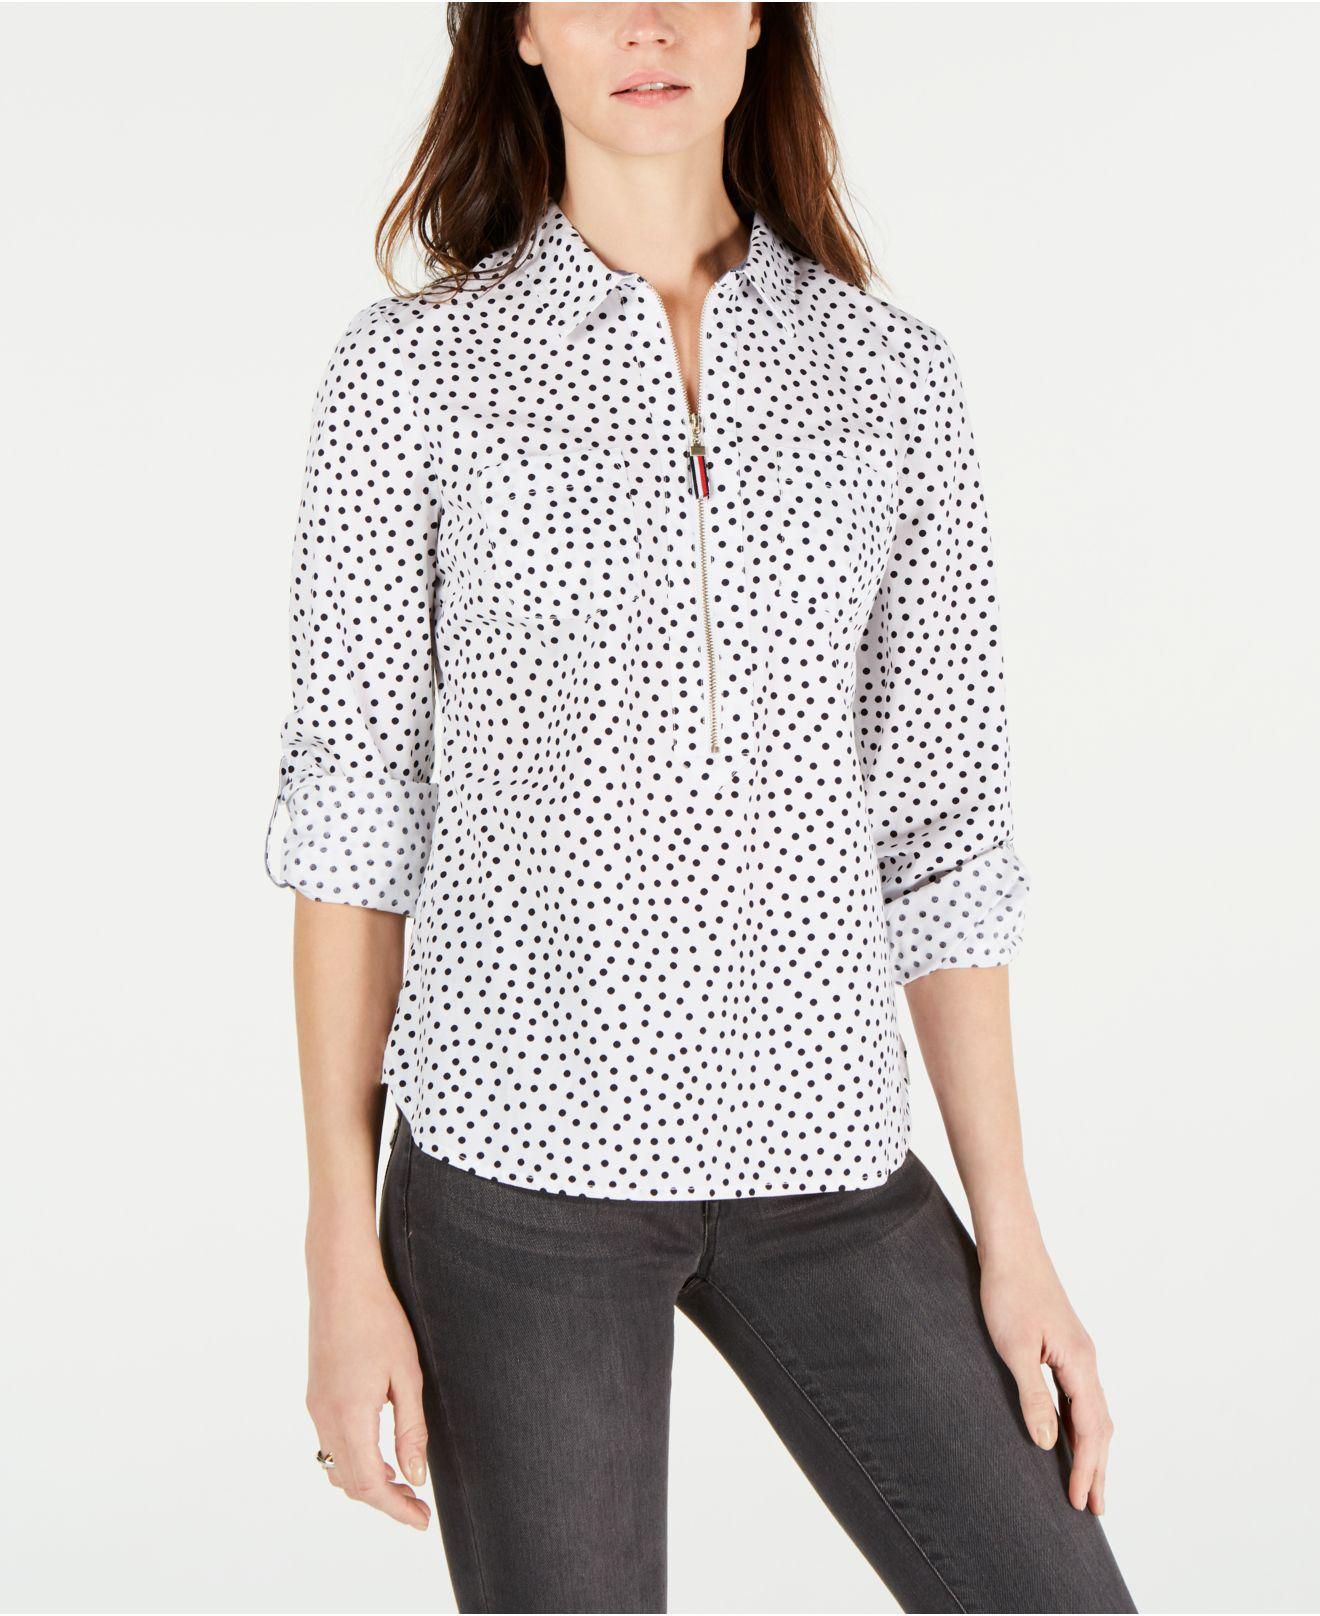 b53c49bac3e Tommy Hilfiger. Women s White Cotton Printed Popover Shirt ...